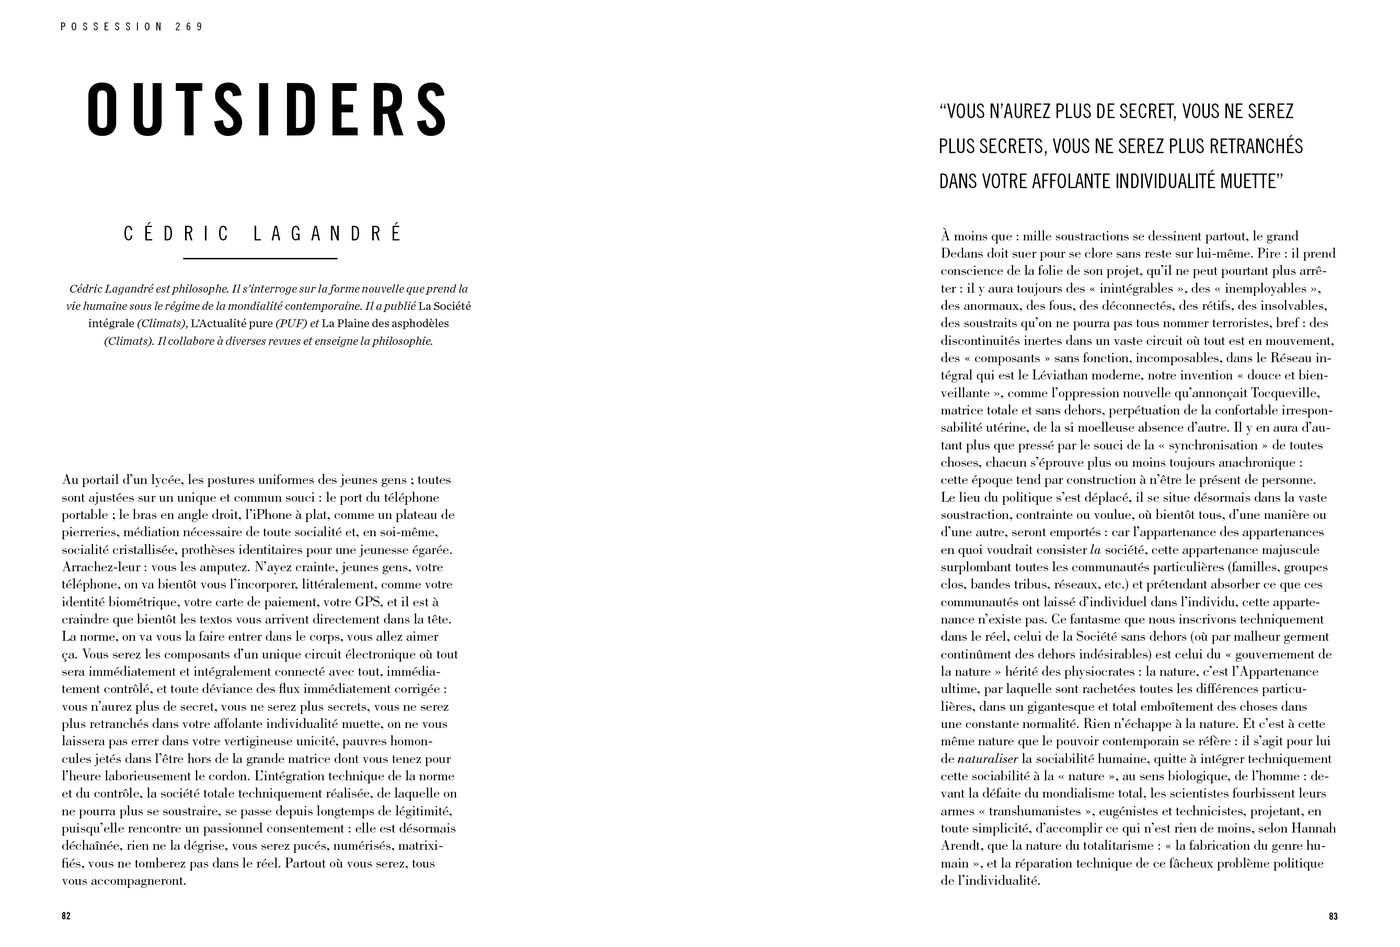 Possession Immédiate Volume 5 - Texte de Cédric Lagandré, Outsiders